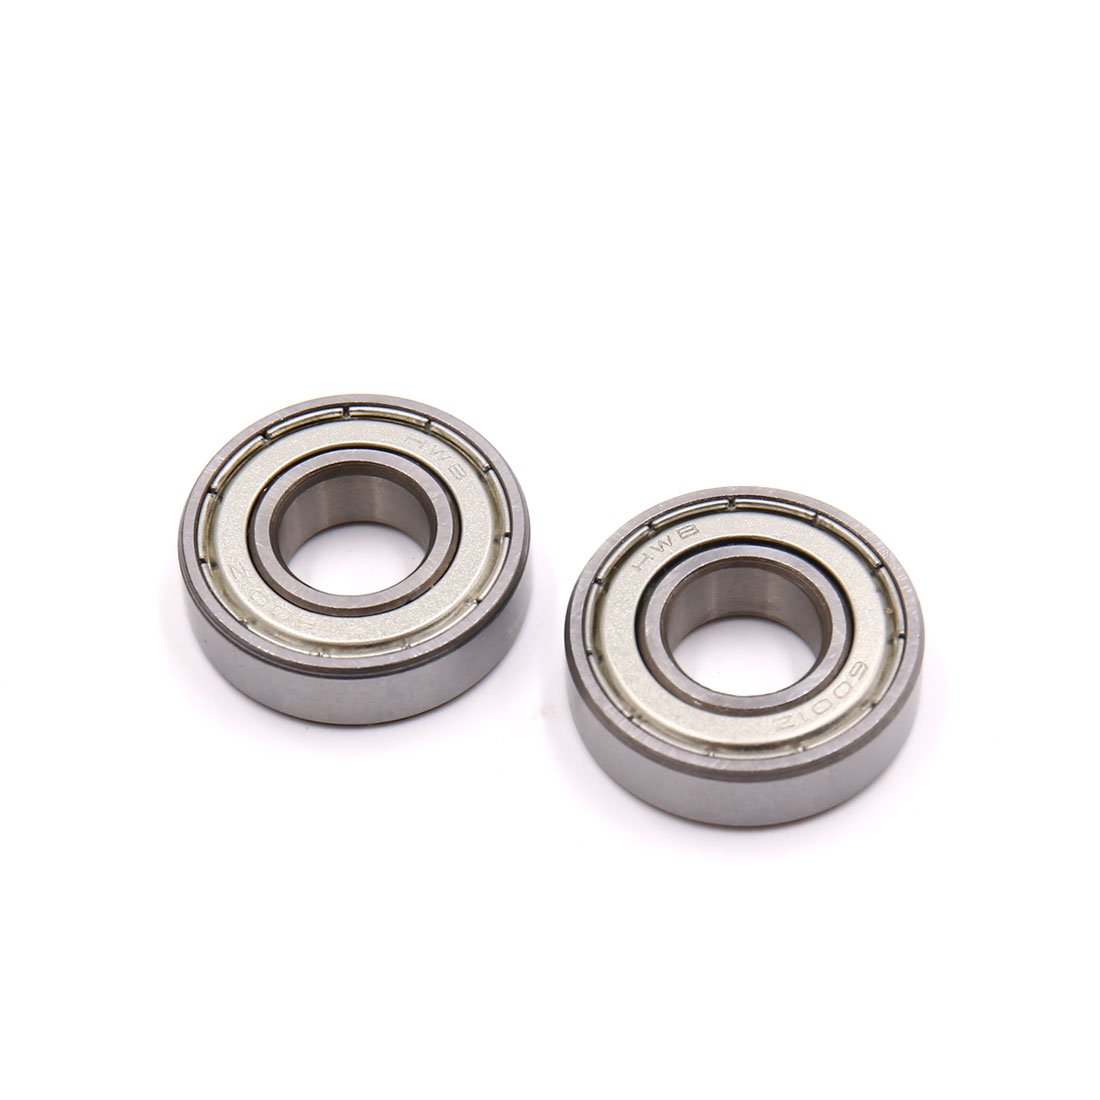 Uxcell 2Pcs 6001Z Stainless Steel Motorcycle Deep Groove Radial Ball Bearing 28 x 12 x 8mm  2 Pack|  - title=